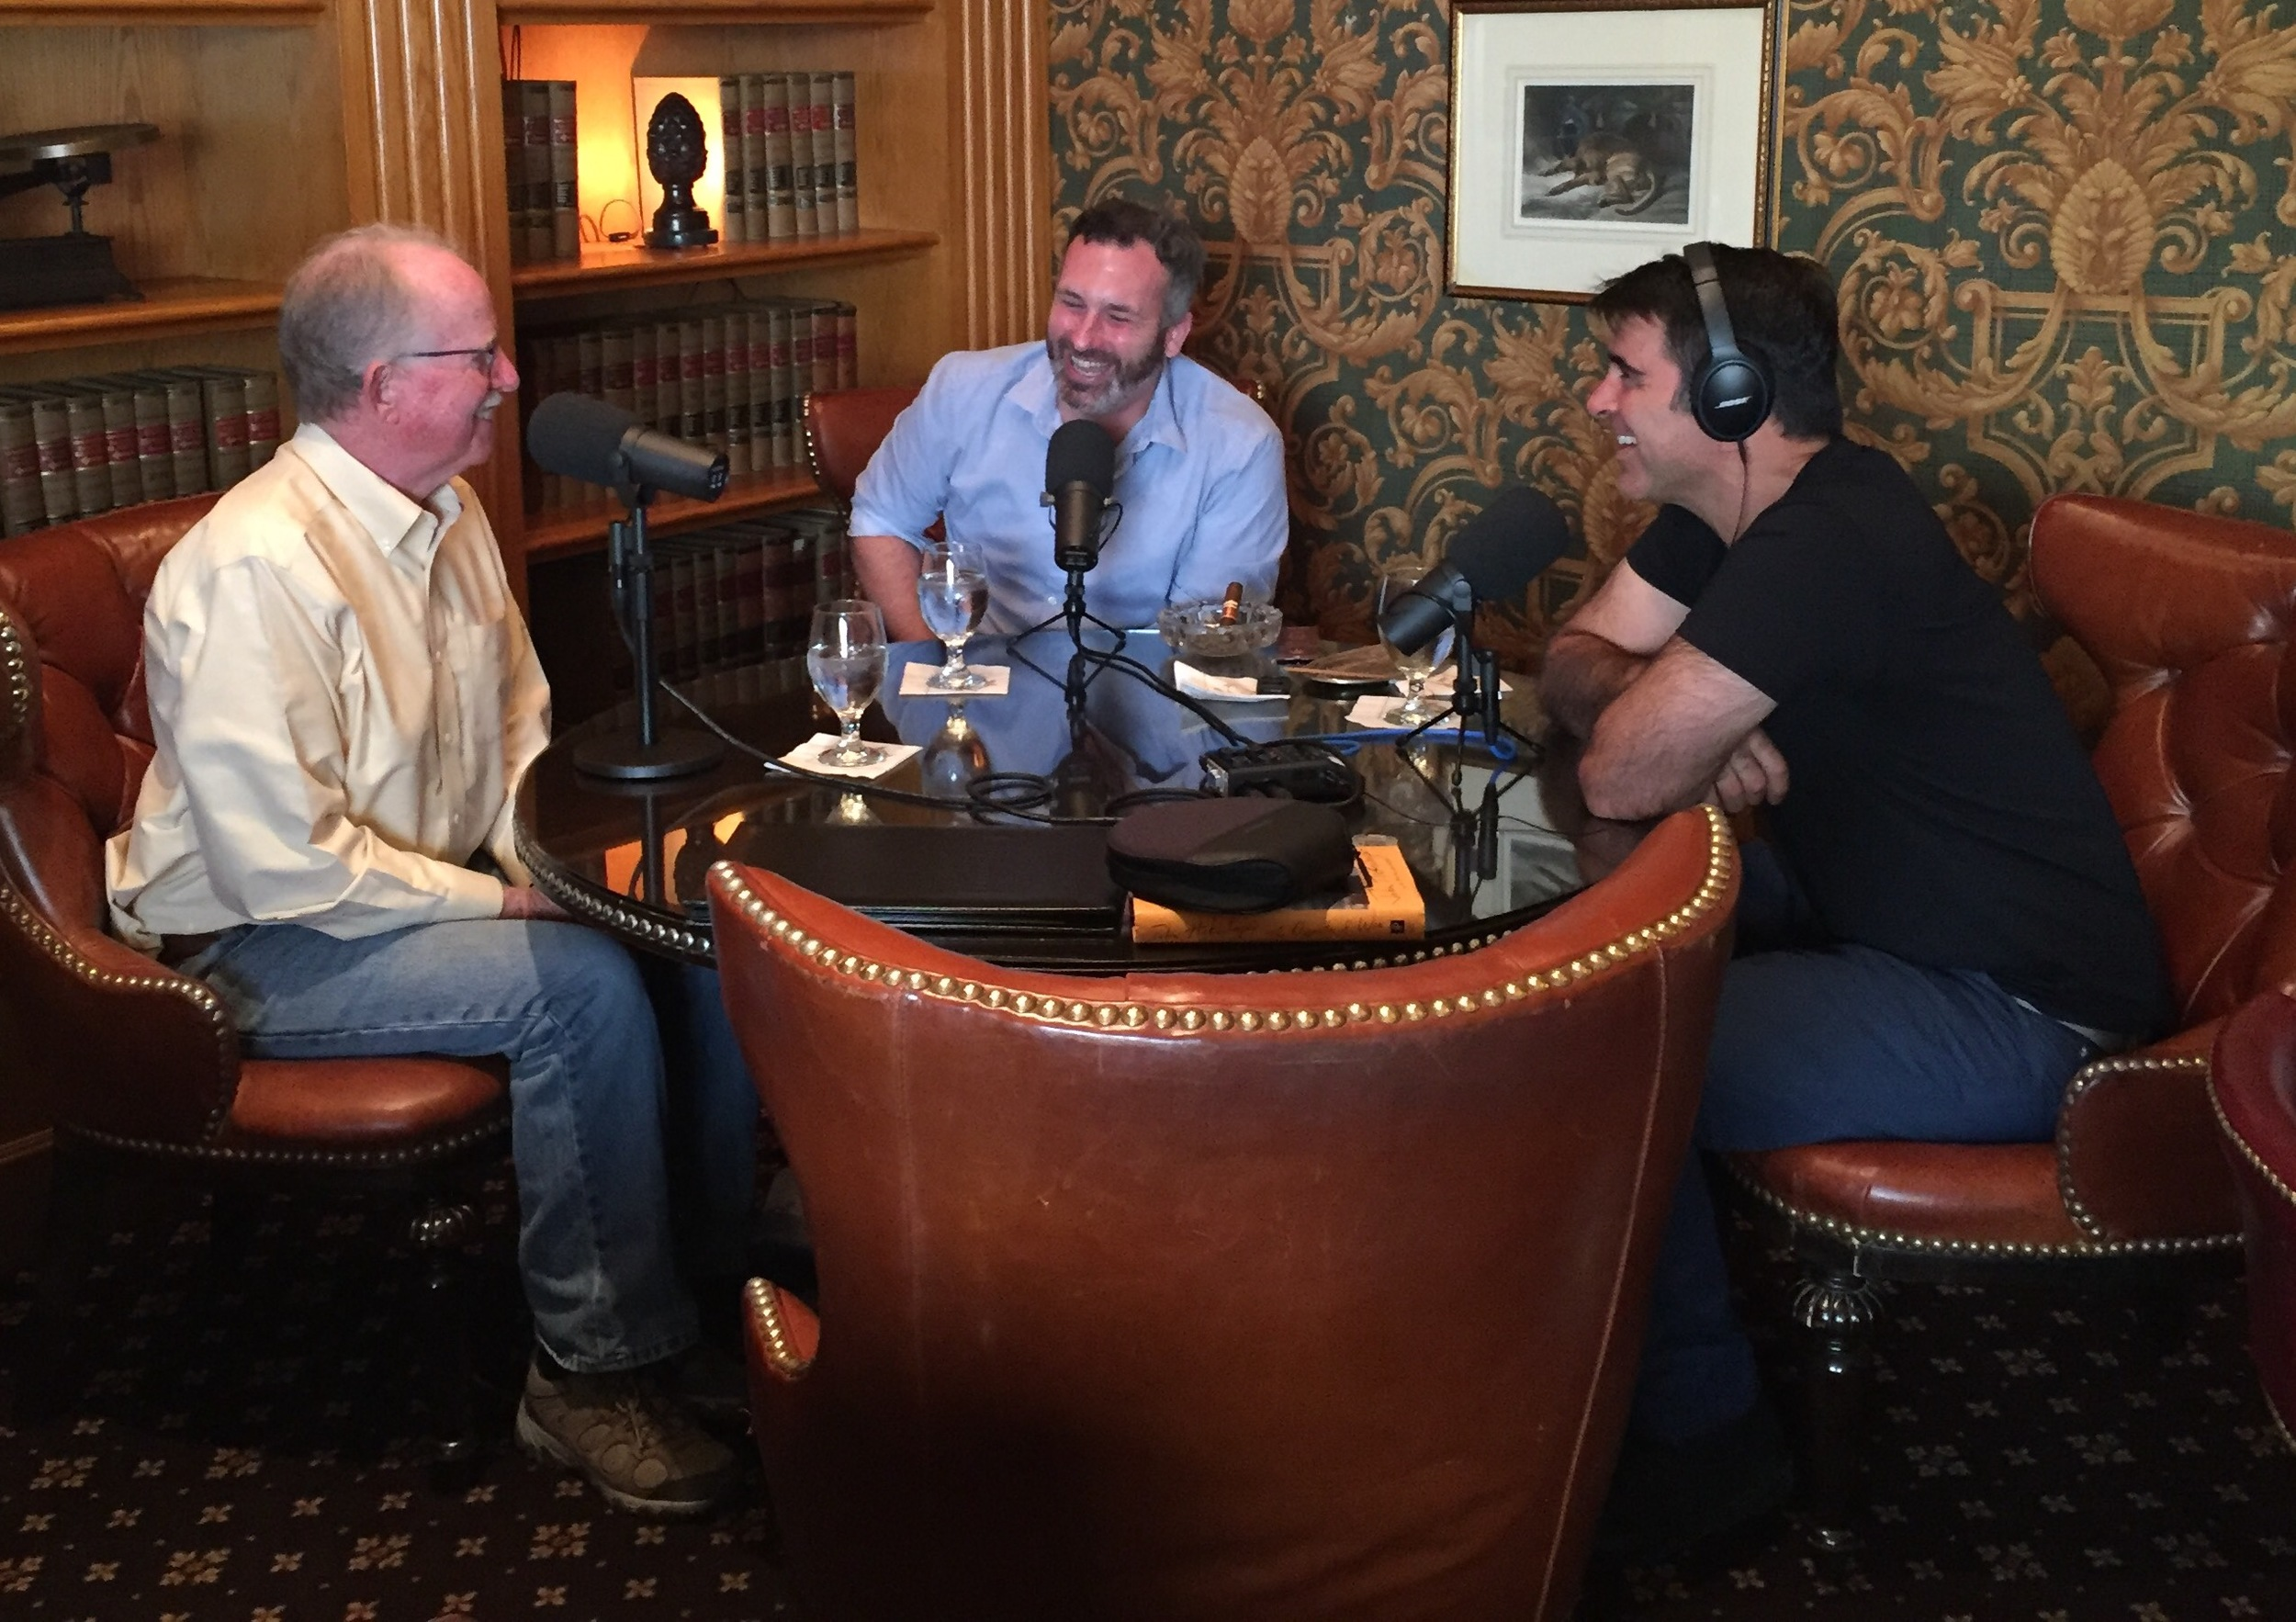 Dick Kreck speaks with Ben Sawyer and Bob Crawford at the historic Brown Palace Hotel.